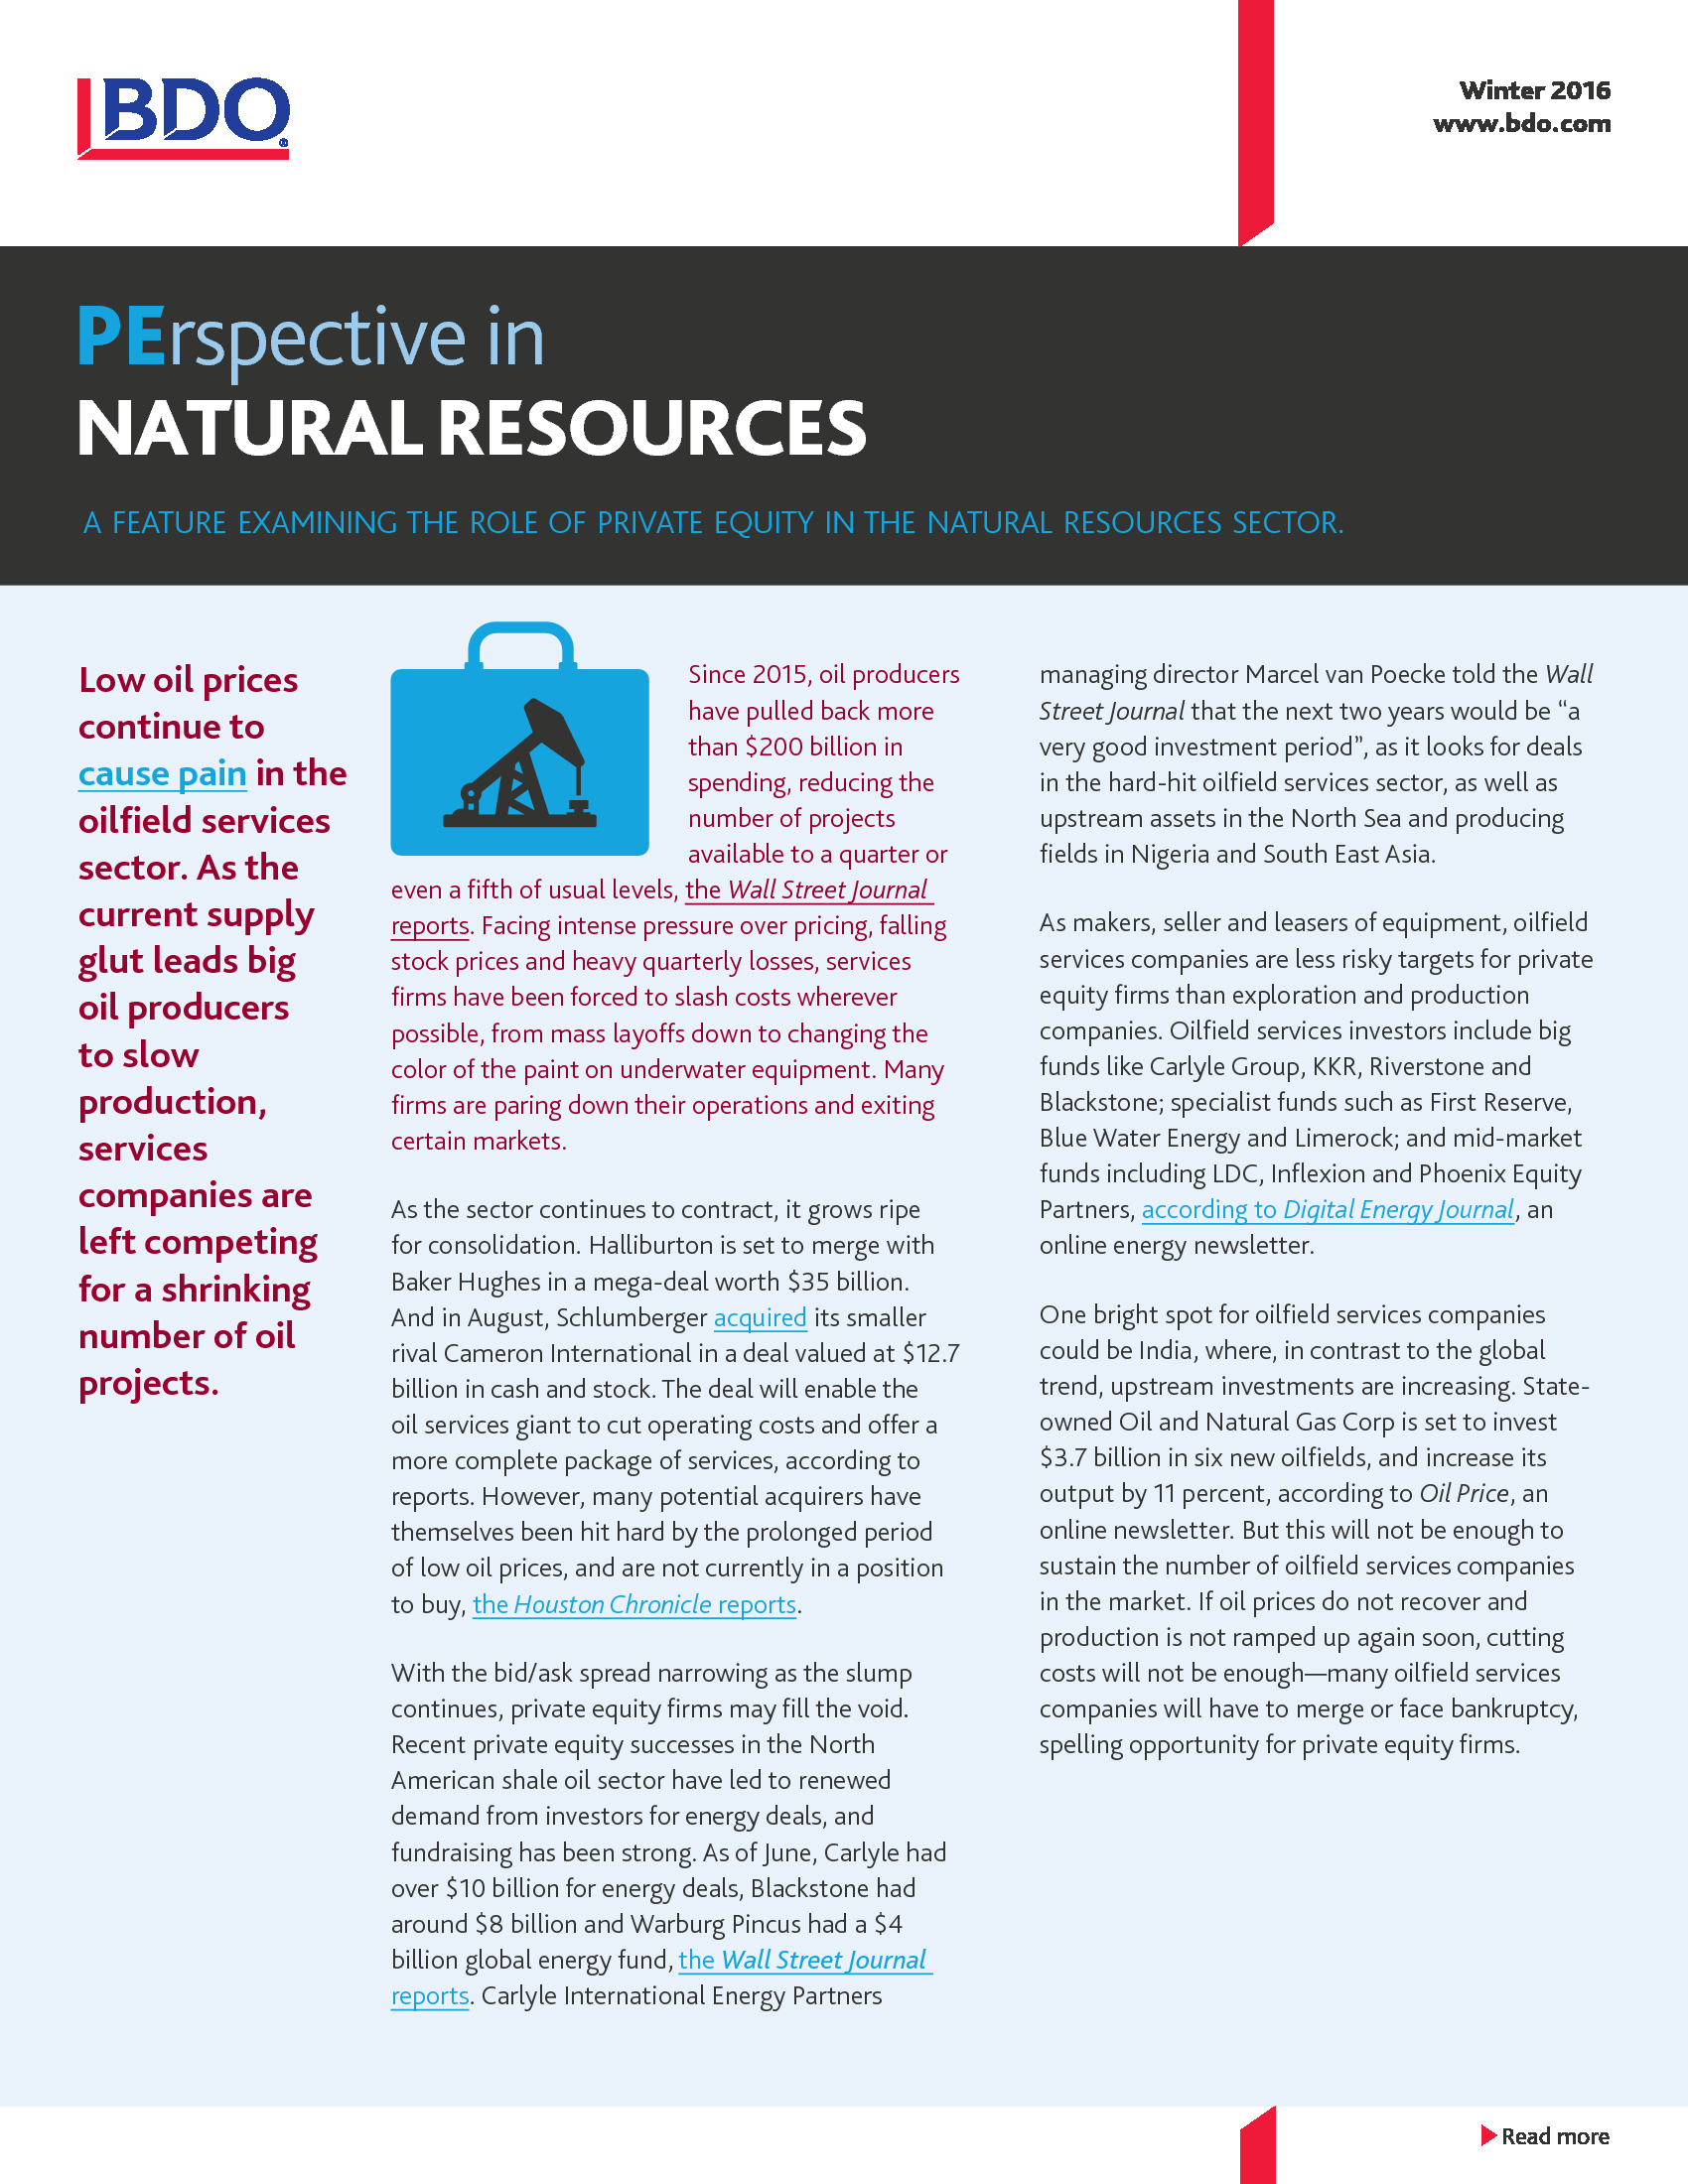 Advisorselect - Perspective in Natural Resources - Winter 2016